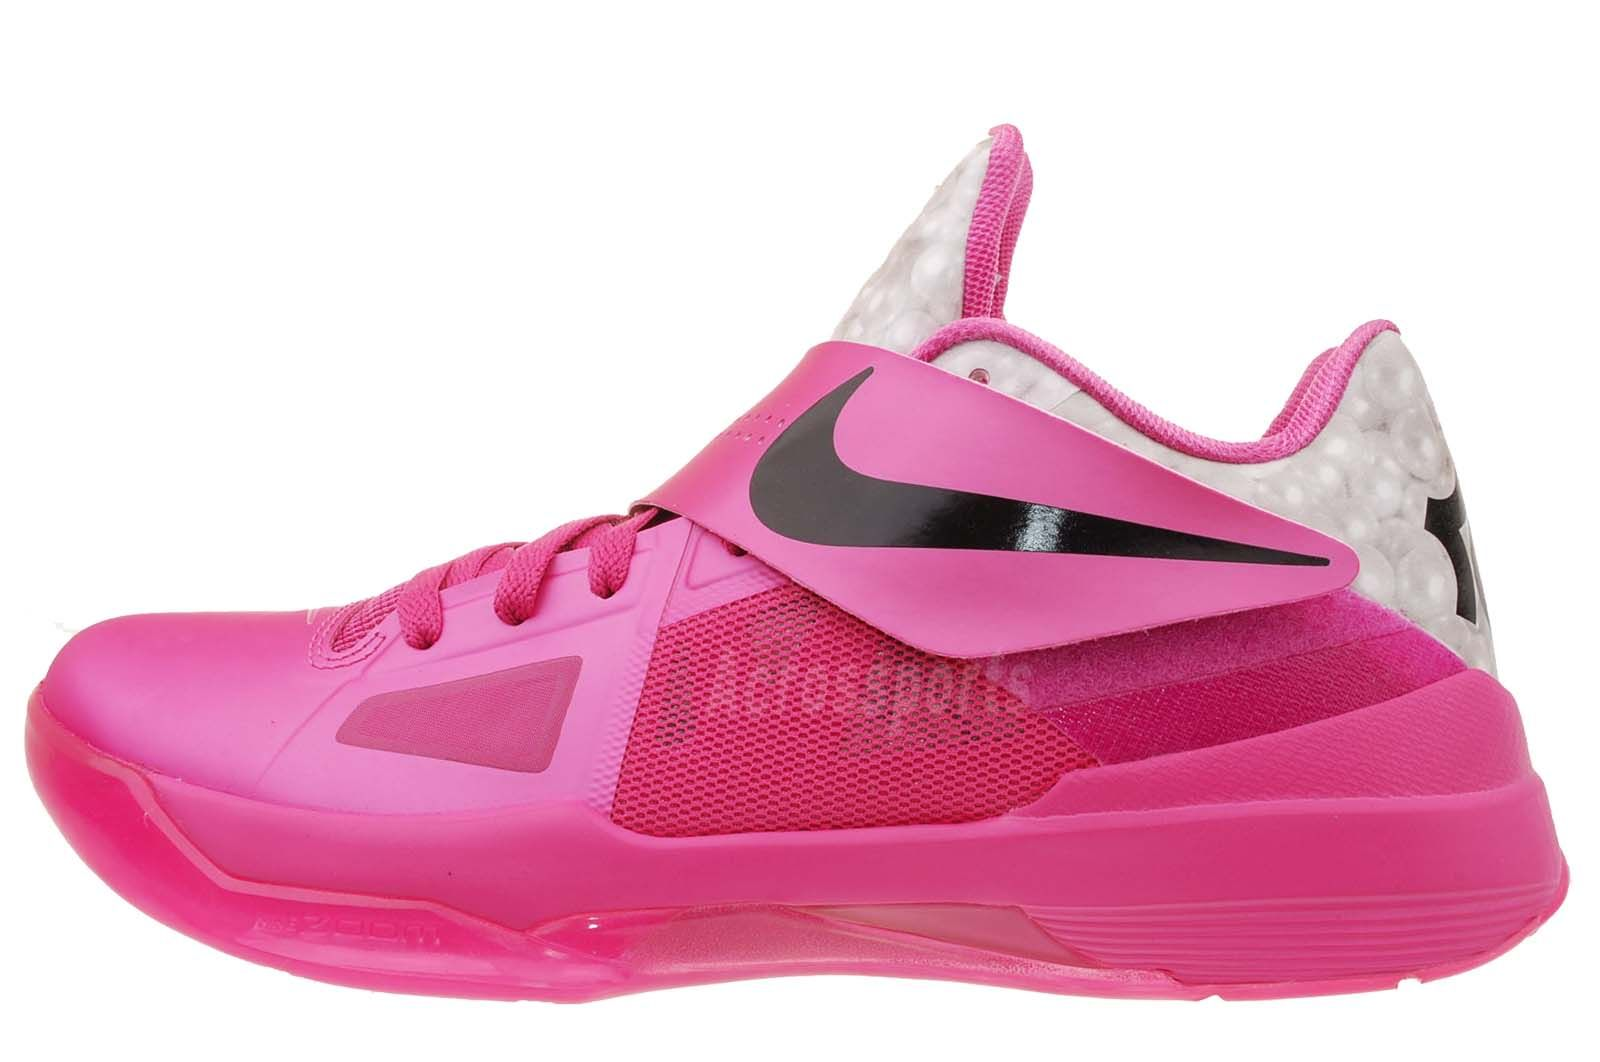 buy online 267ca 1b2e7 Details about Nike Zoom KD IV Aunt Pearl Kay Yow Breast Cancer Limited  Edition… Find this Pin and ...